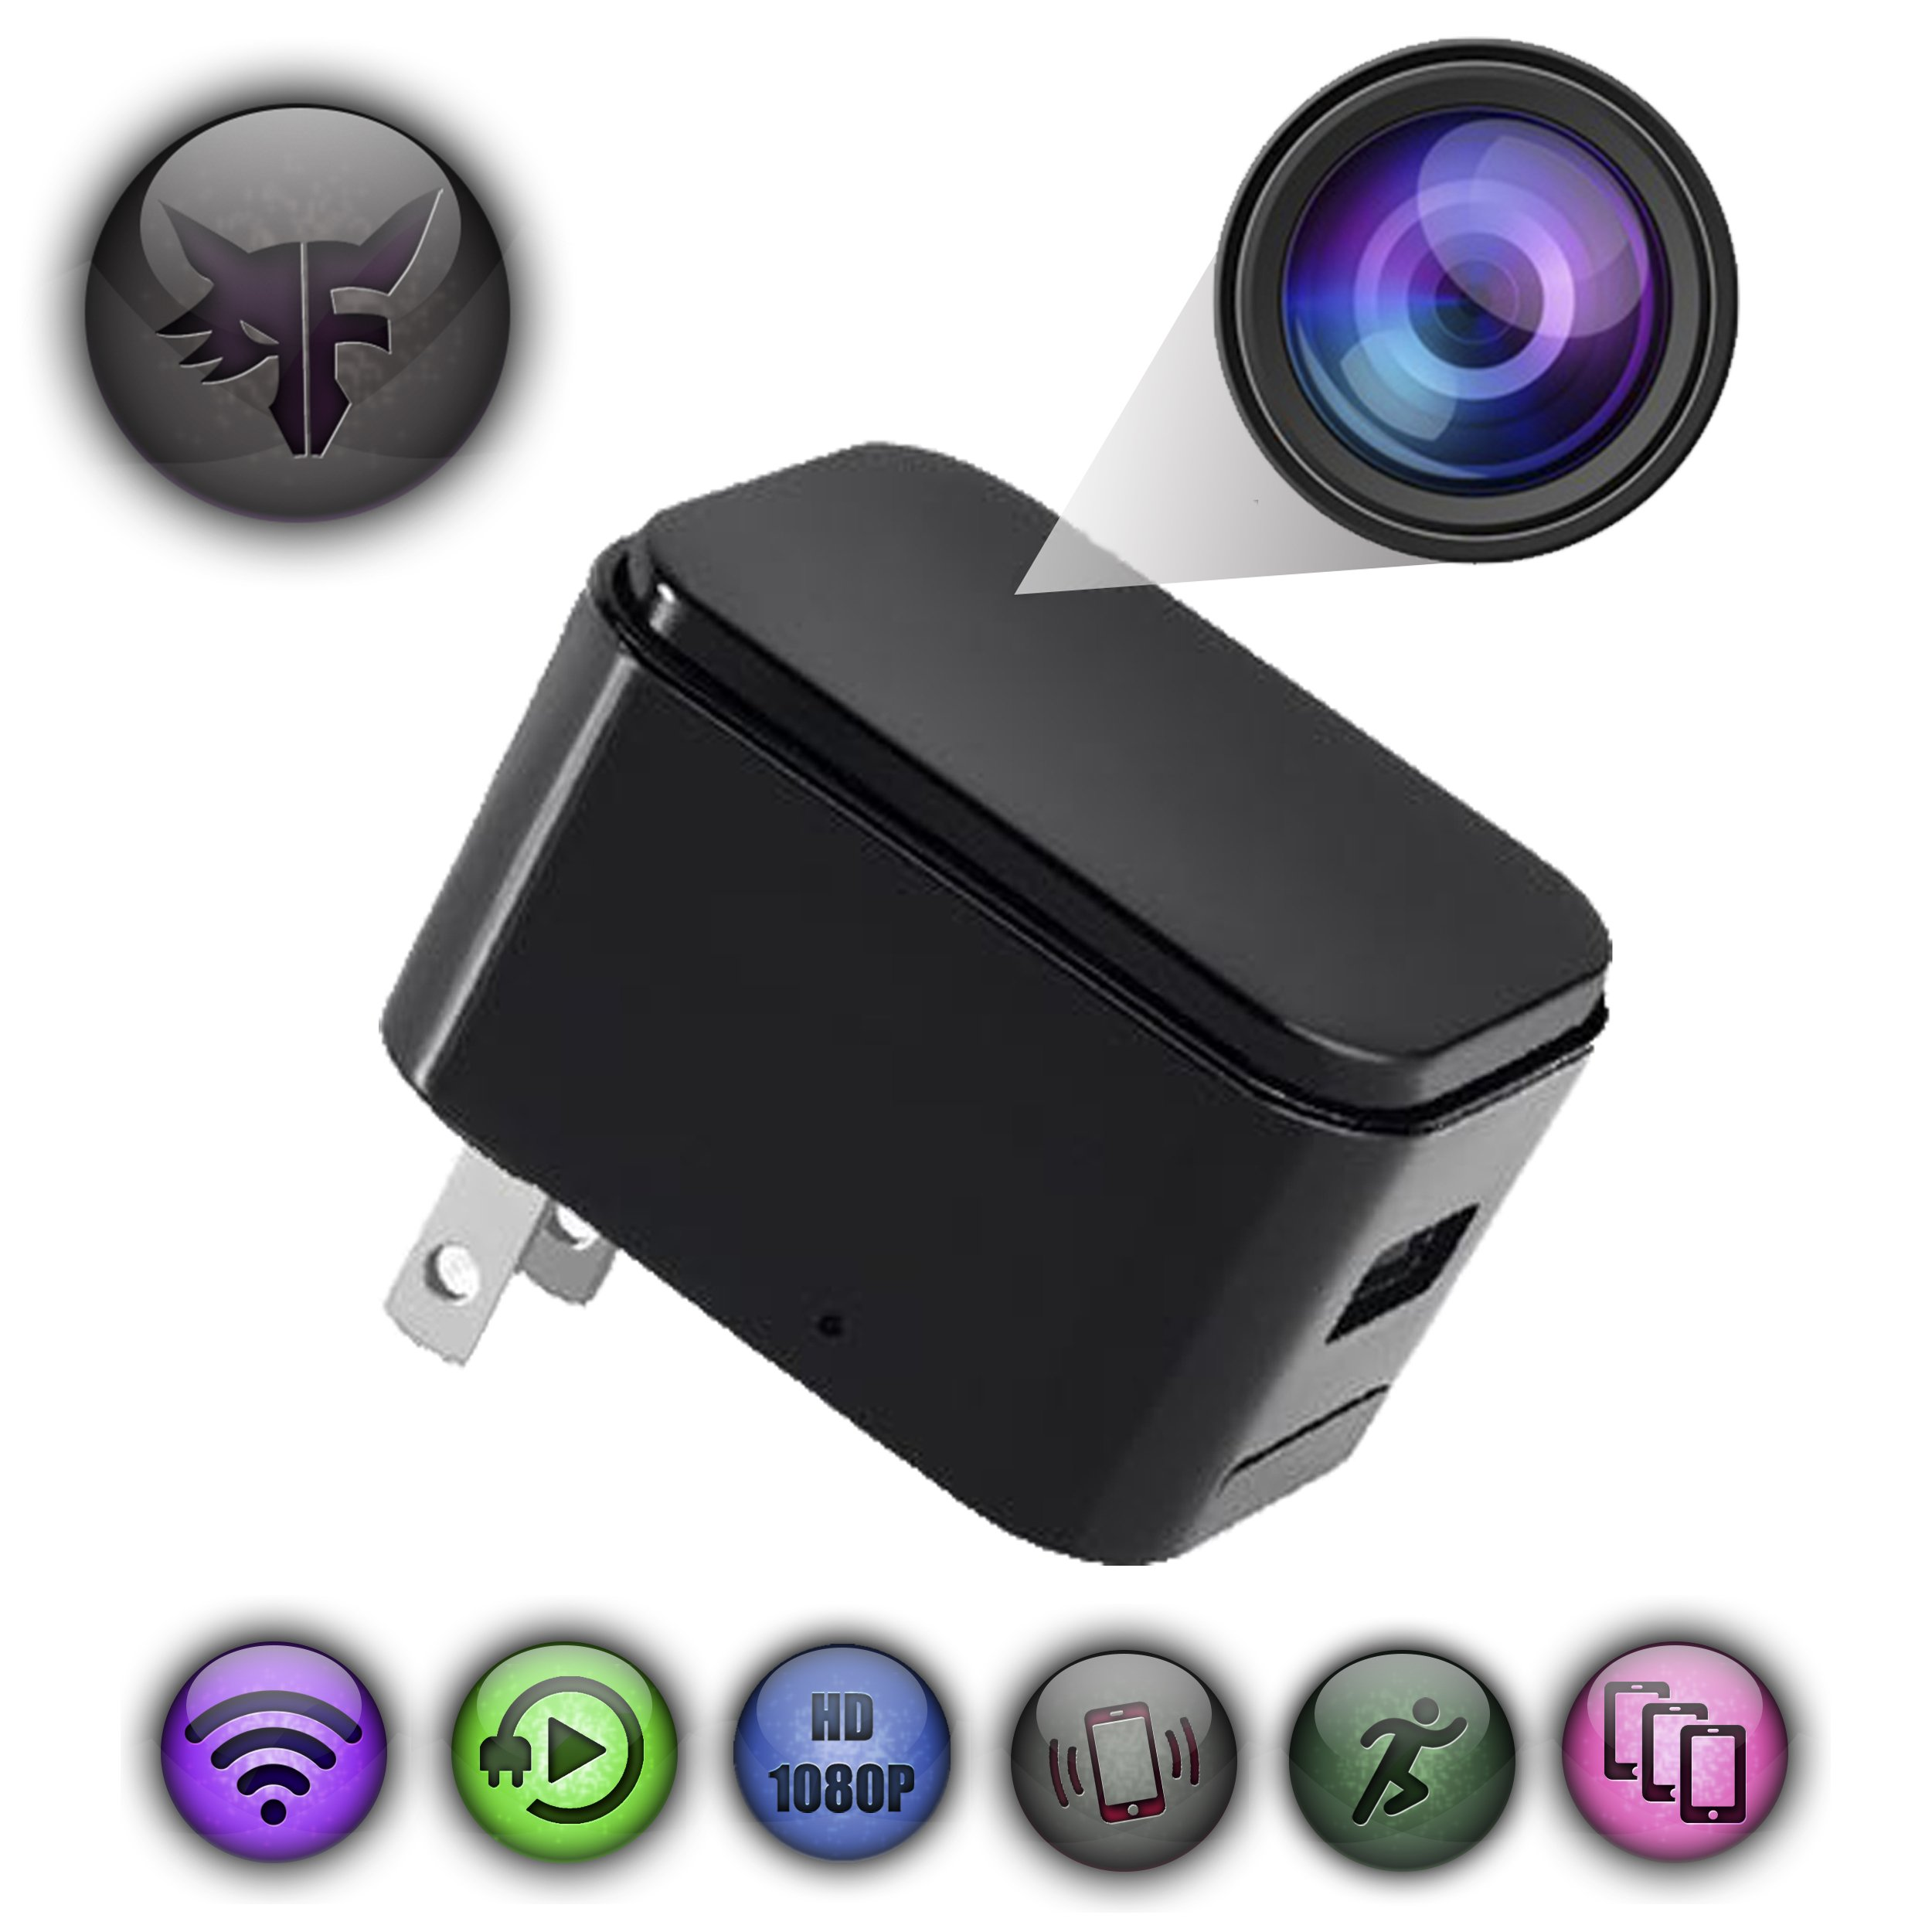 WiFi Hidden Camera - Phone Charger - Spy Camera - Wide Angle - Motion Detection - Push Notification - Surveillance - Security - Theft Protection - HD 1080P - USB Nanny Cam - Baby Monitor